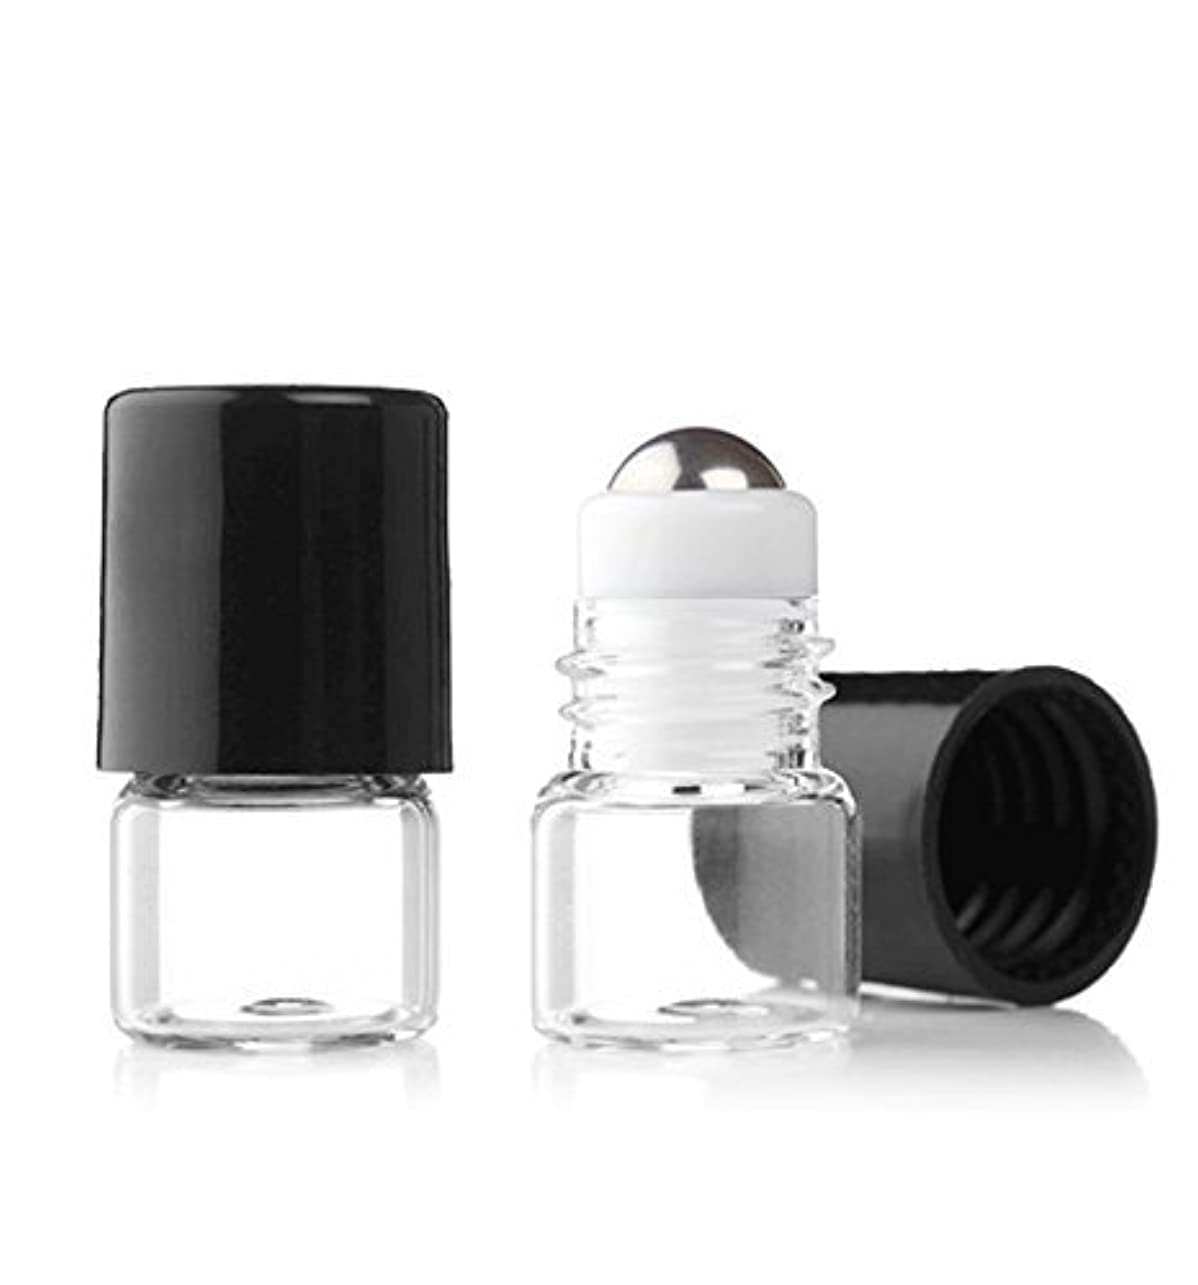 フロンティアクリスチャン電気Grand Parfums Empty 1ml Micro Mini Rollon Dram Glass Bottles with Metal Roller Balls - Refillable Aromatherapy...